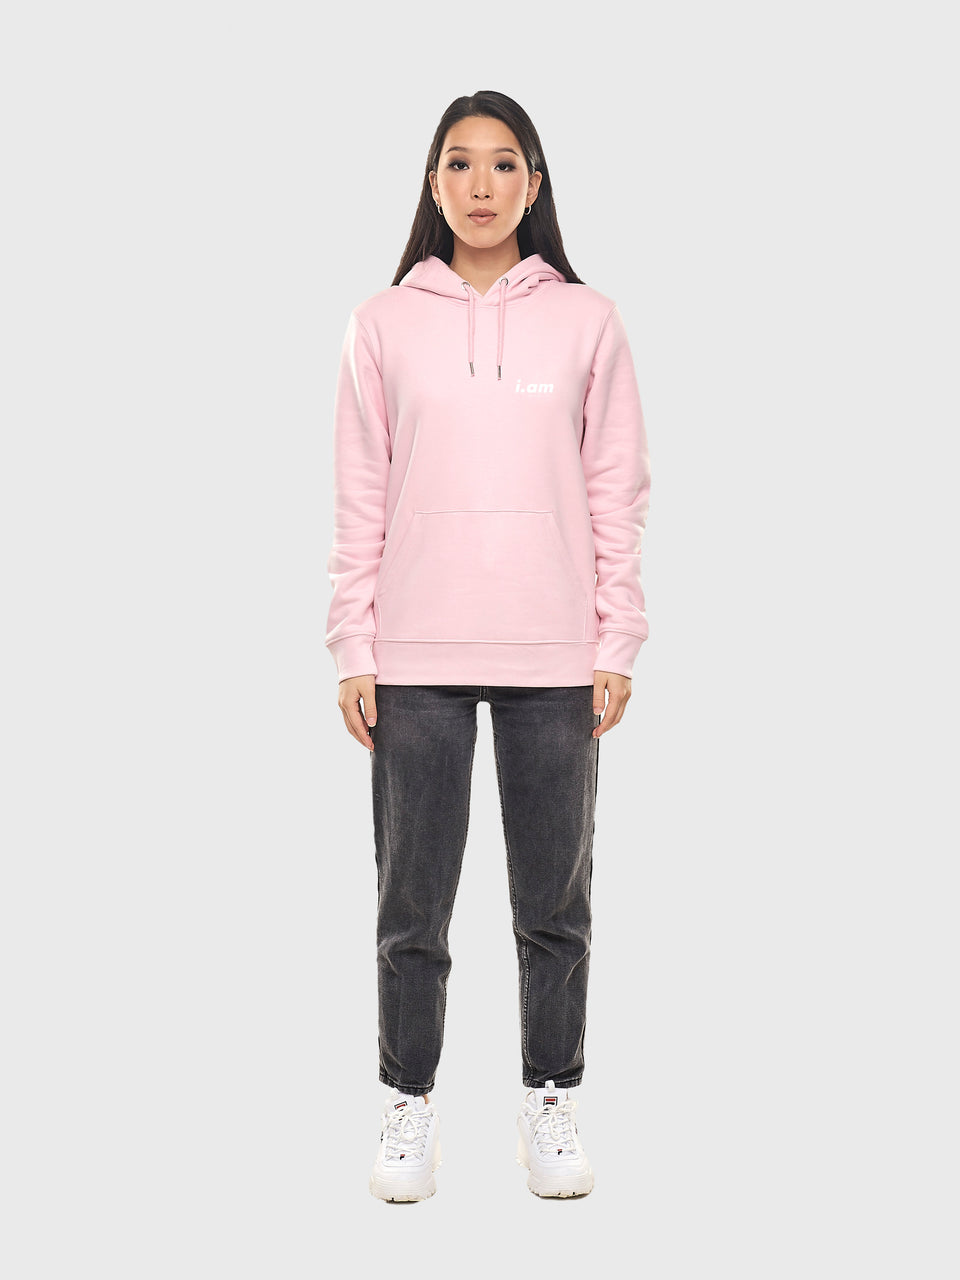 Showing not telling - Pink - Unisex pull over hoodie